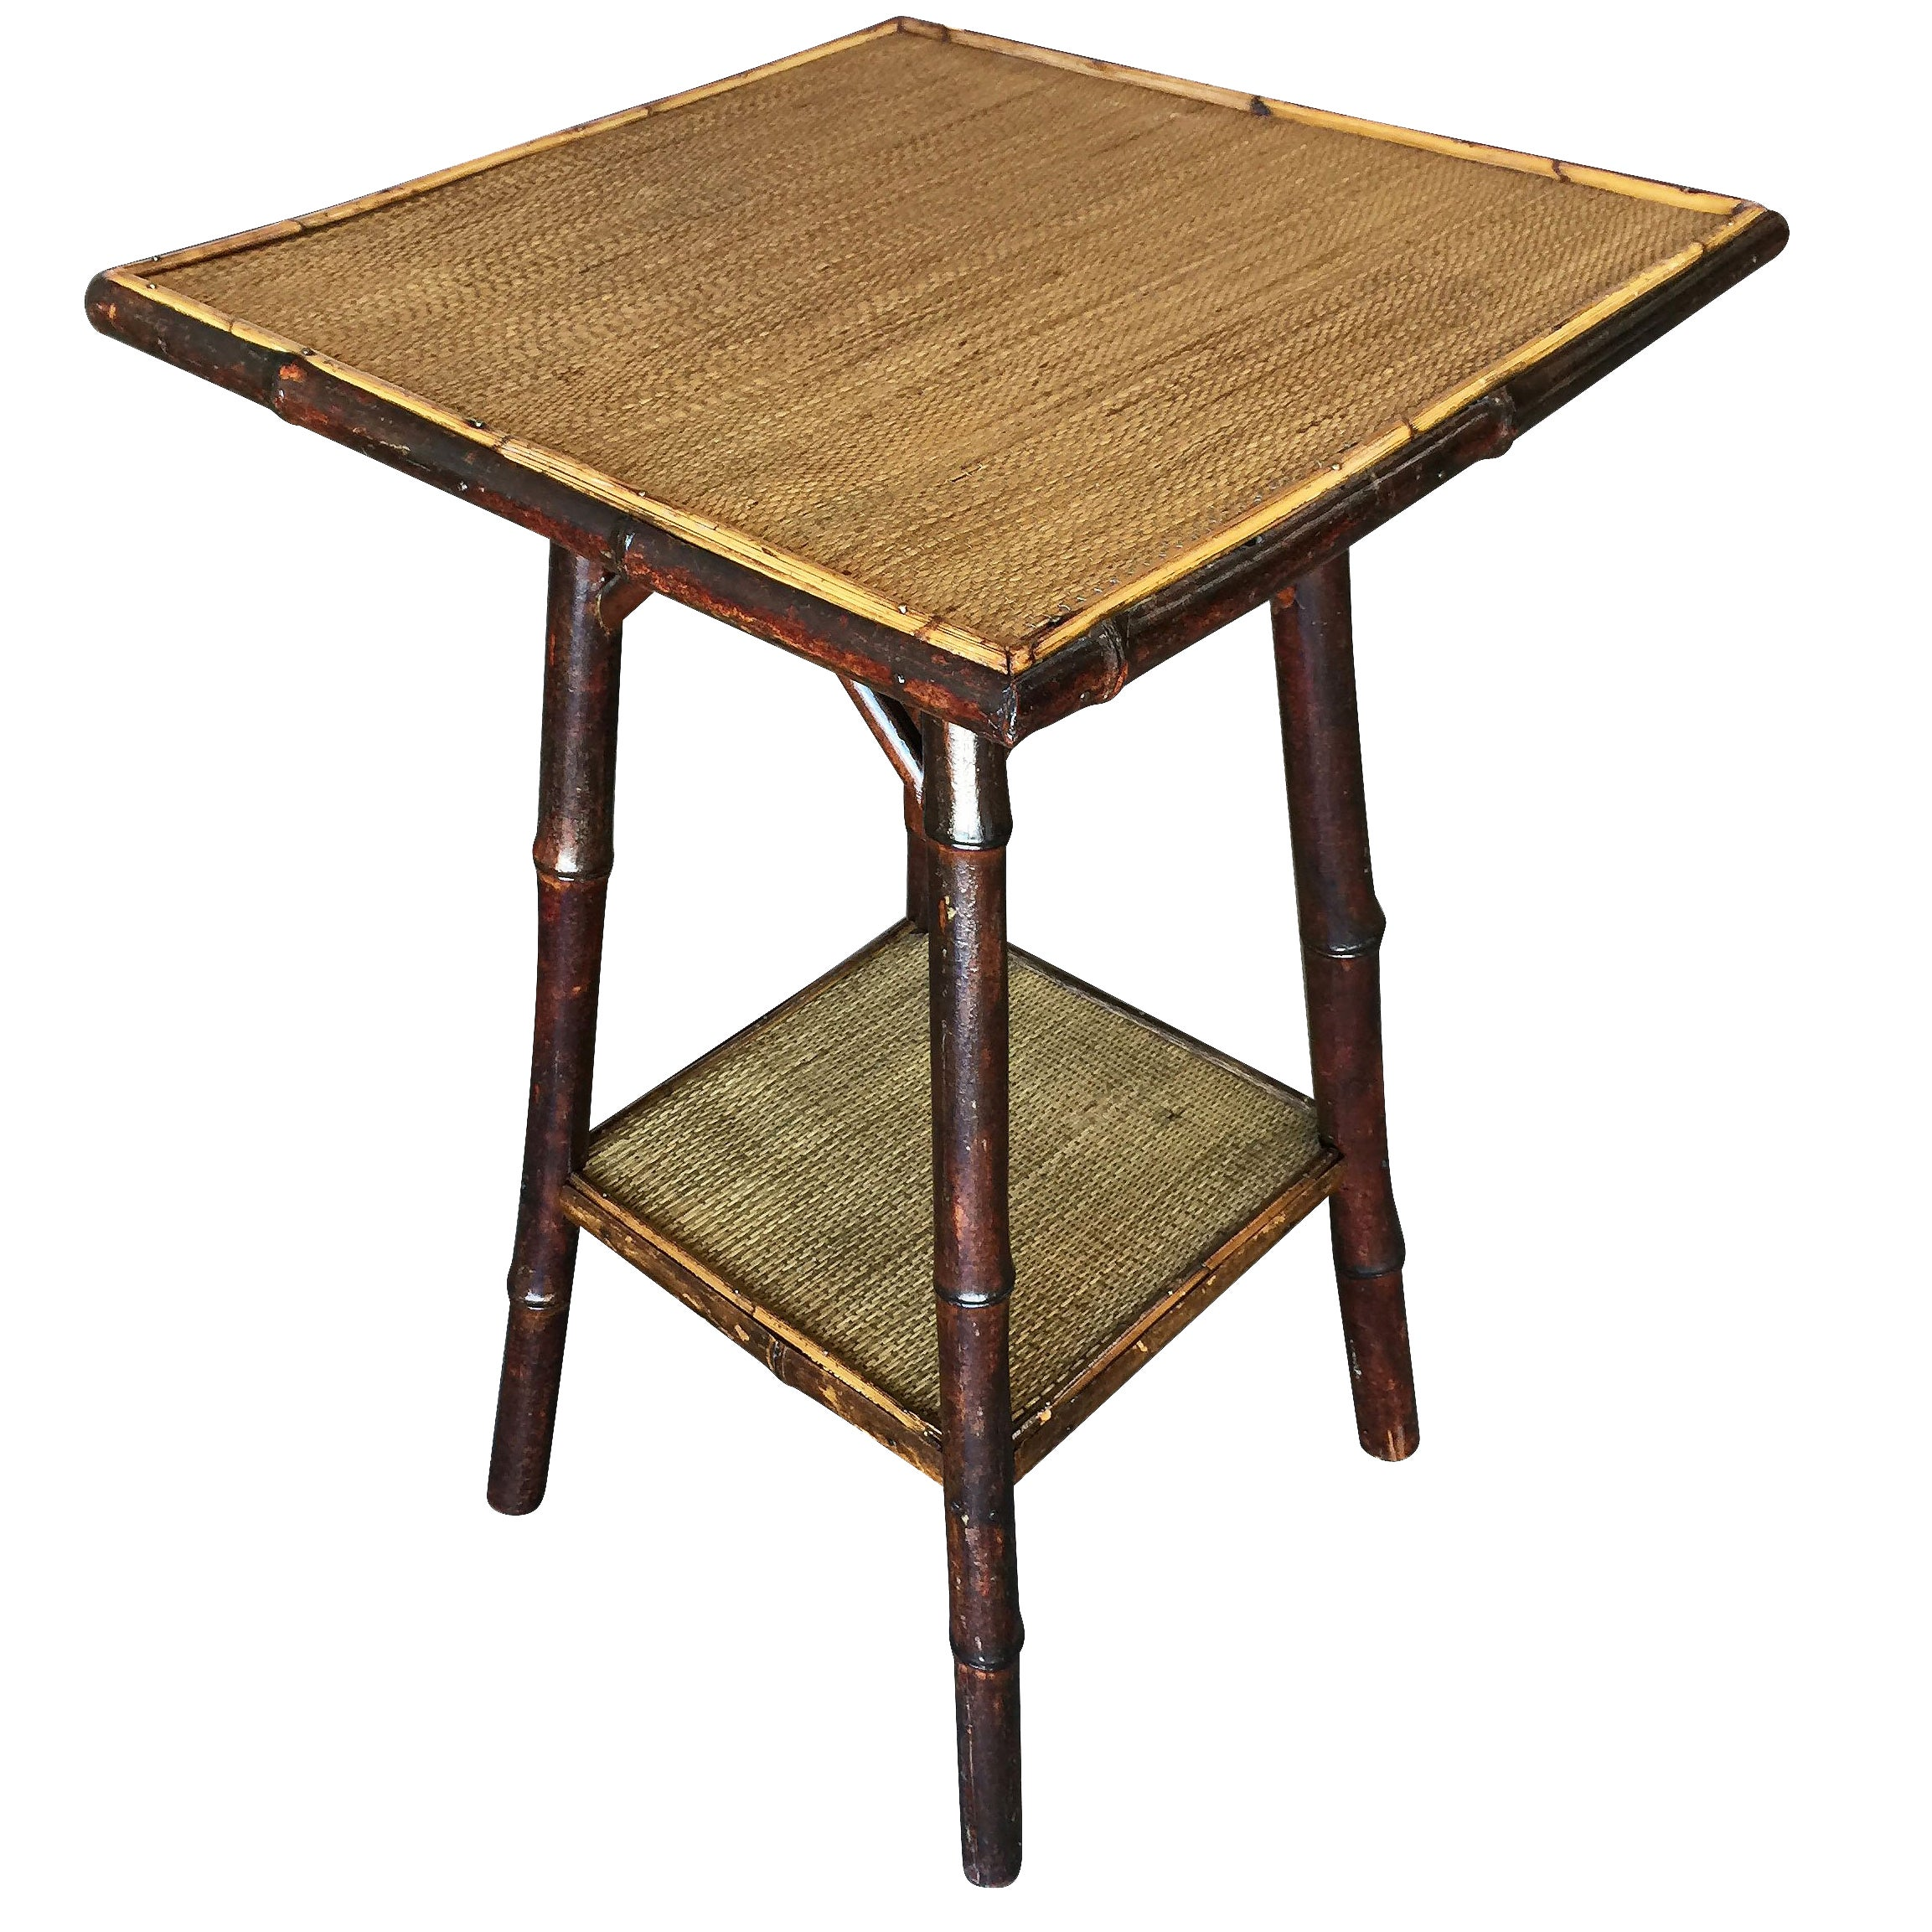 Restored Dark Stained Bamboo Pedestal Side Table with Bottom Shelf